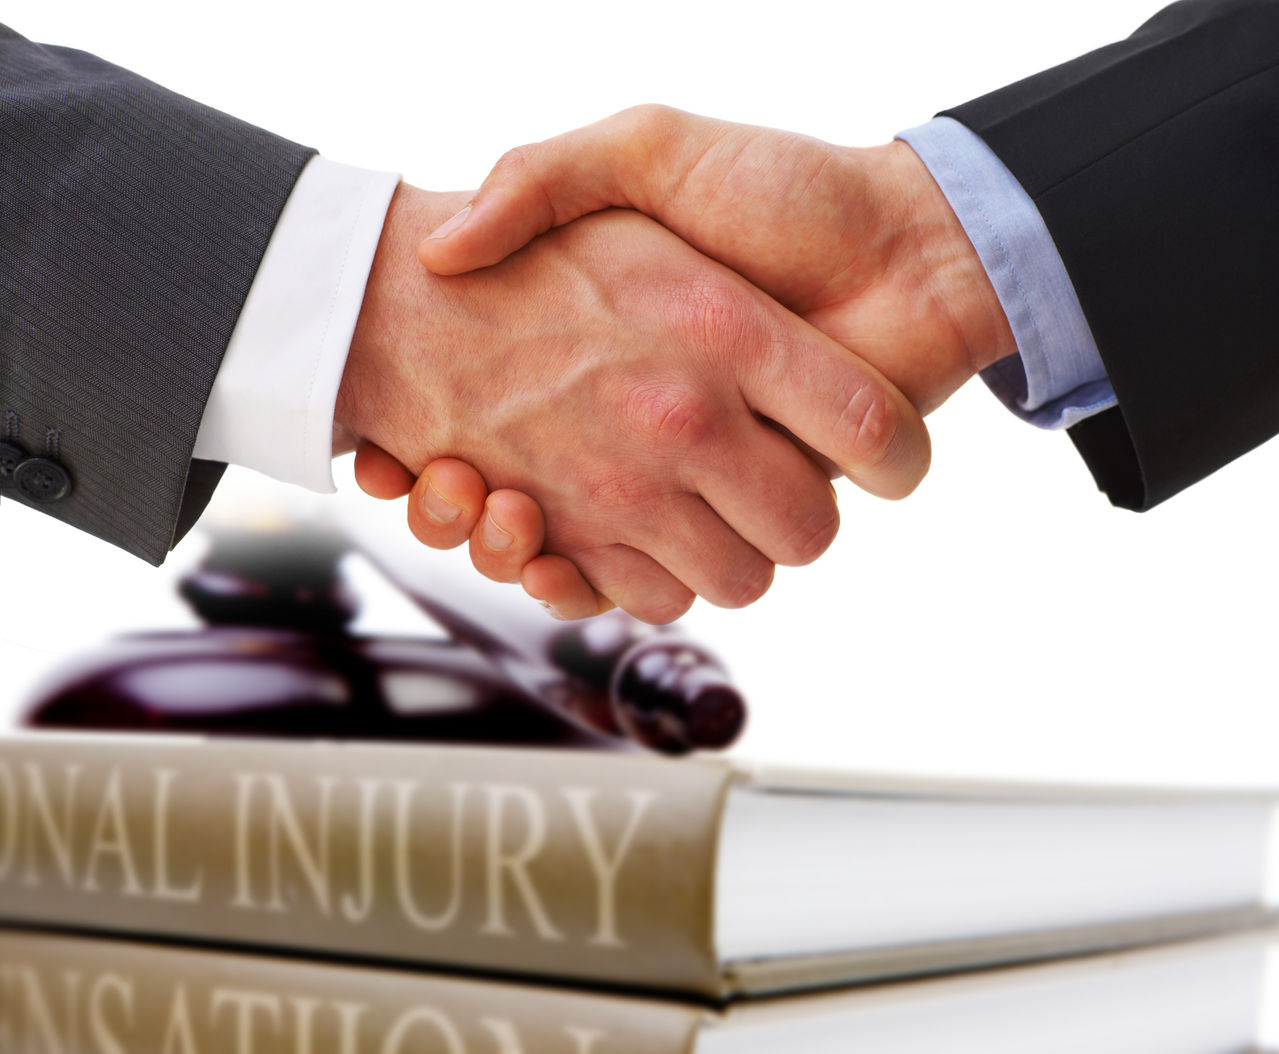 two white men in suits shaking right hands in front of a personal injury book and gavel